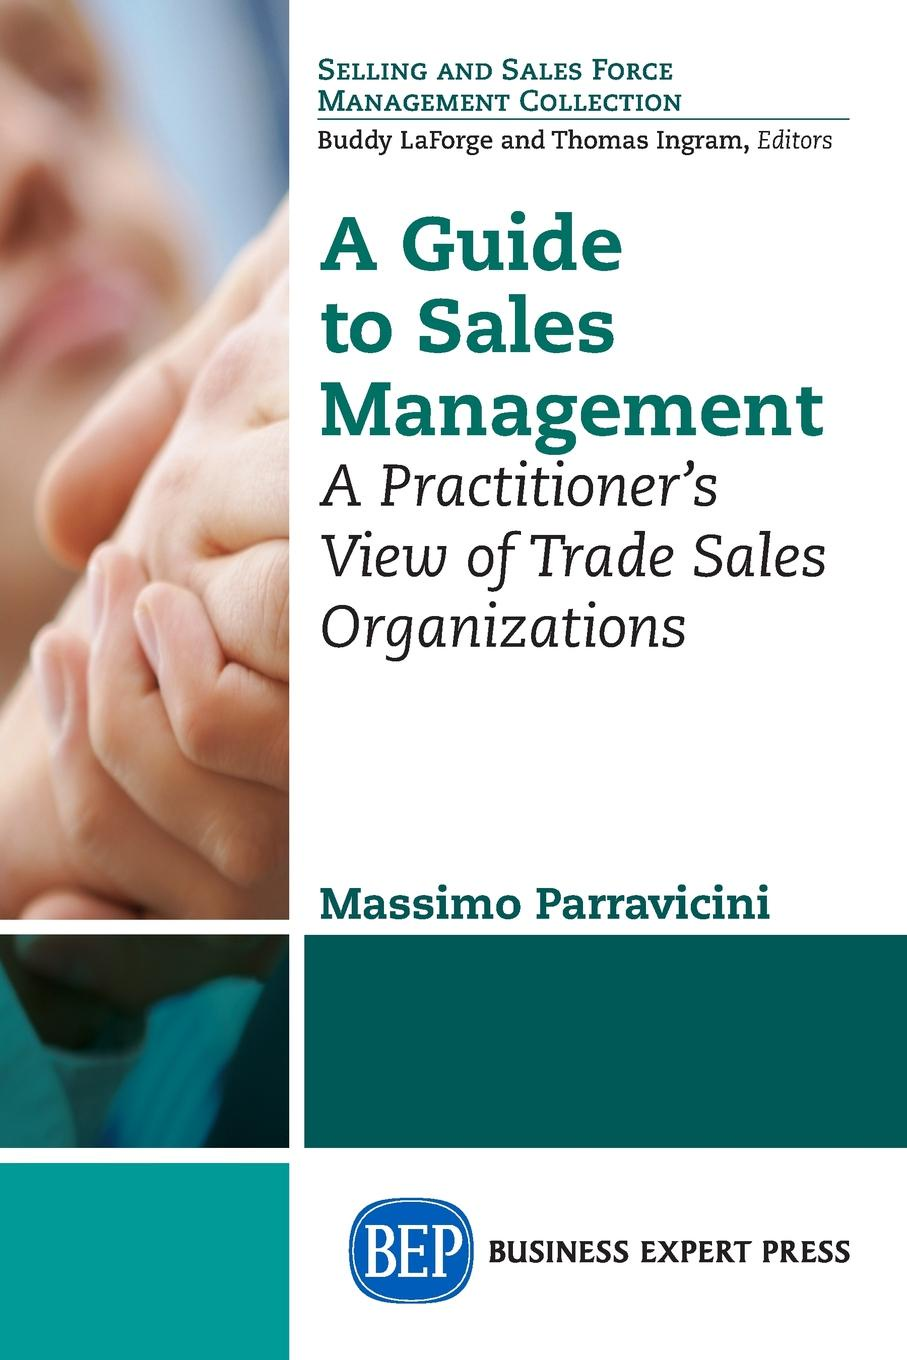 Massimo Parravicini A Guide to Sales Management. A Practitioner's View of Trade Sales Organizations chris lytle the accidental sales manager how to take control and lead your sales team to record profits